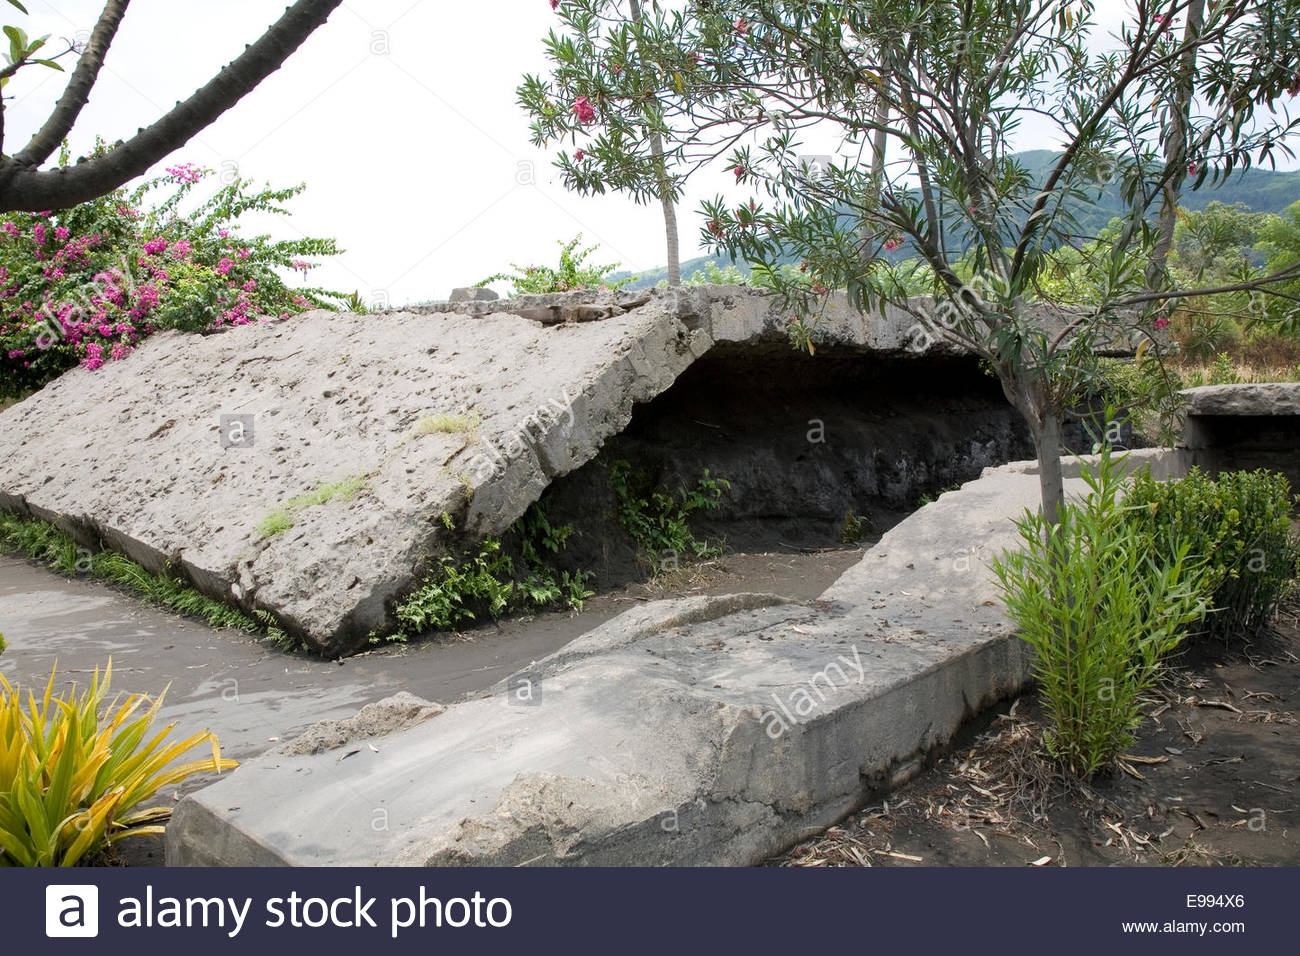 Admiral Yamamoto's Bunker Rabaul, The bunker of Admiral Yamamoto, Japanese commander in the Pacific ...